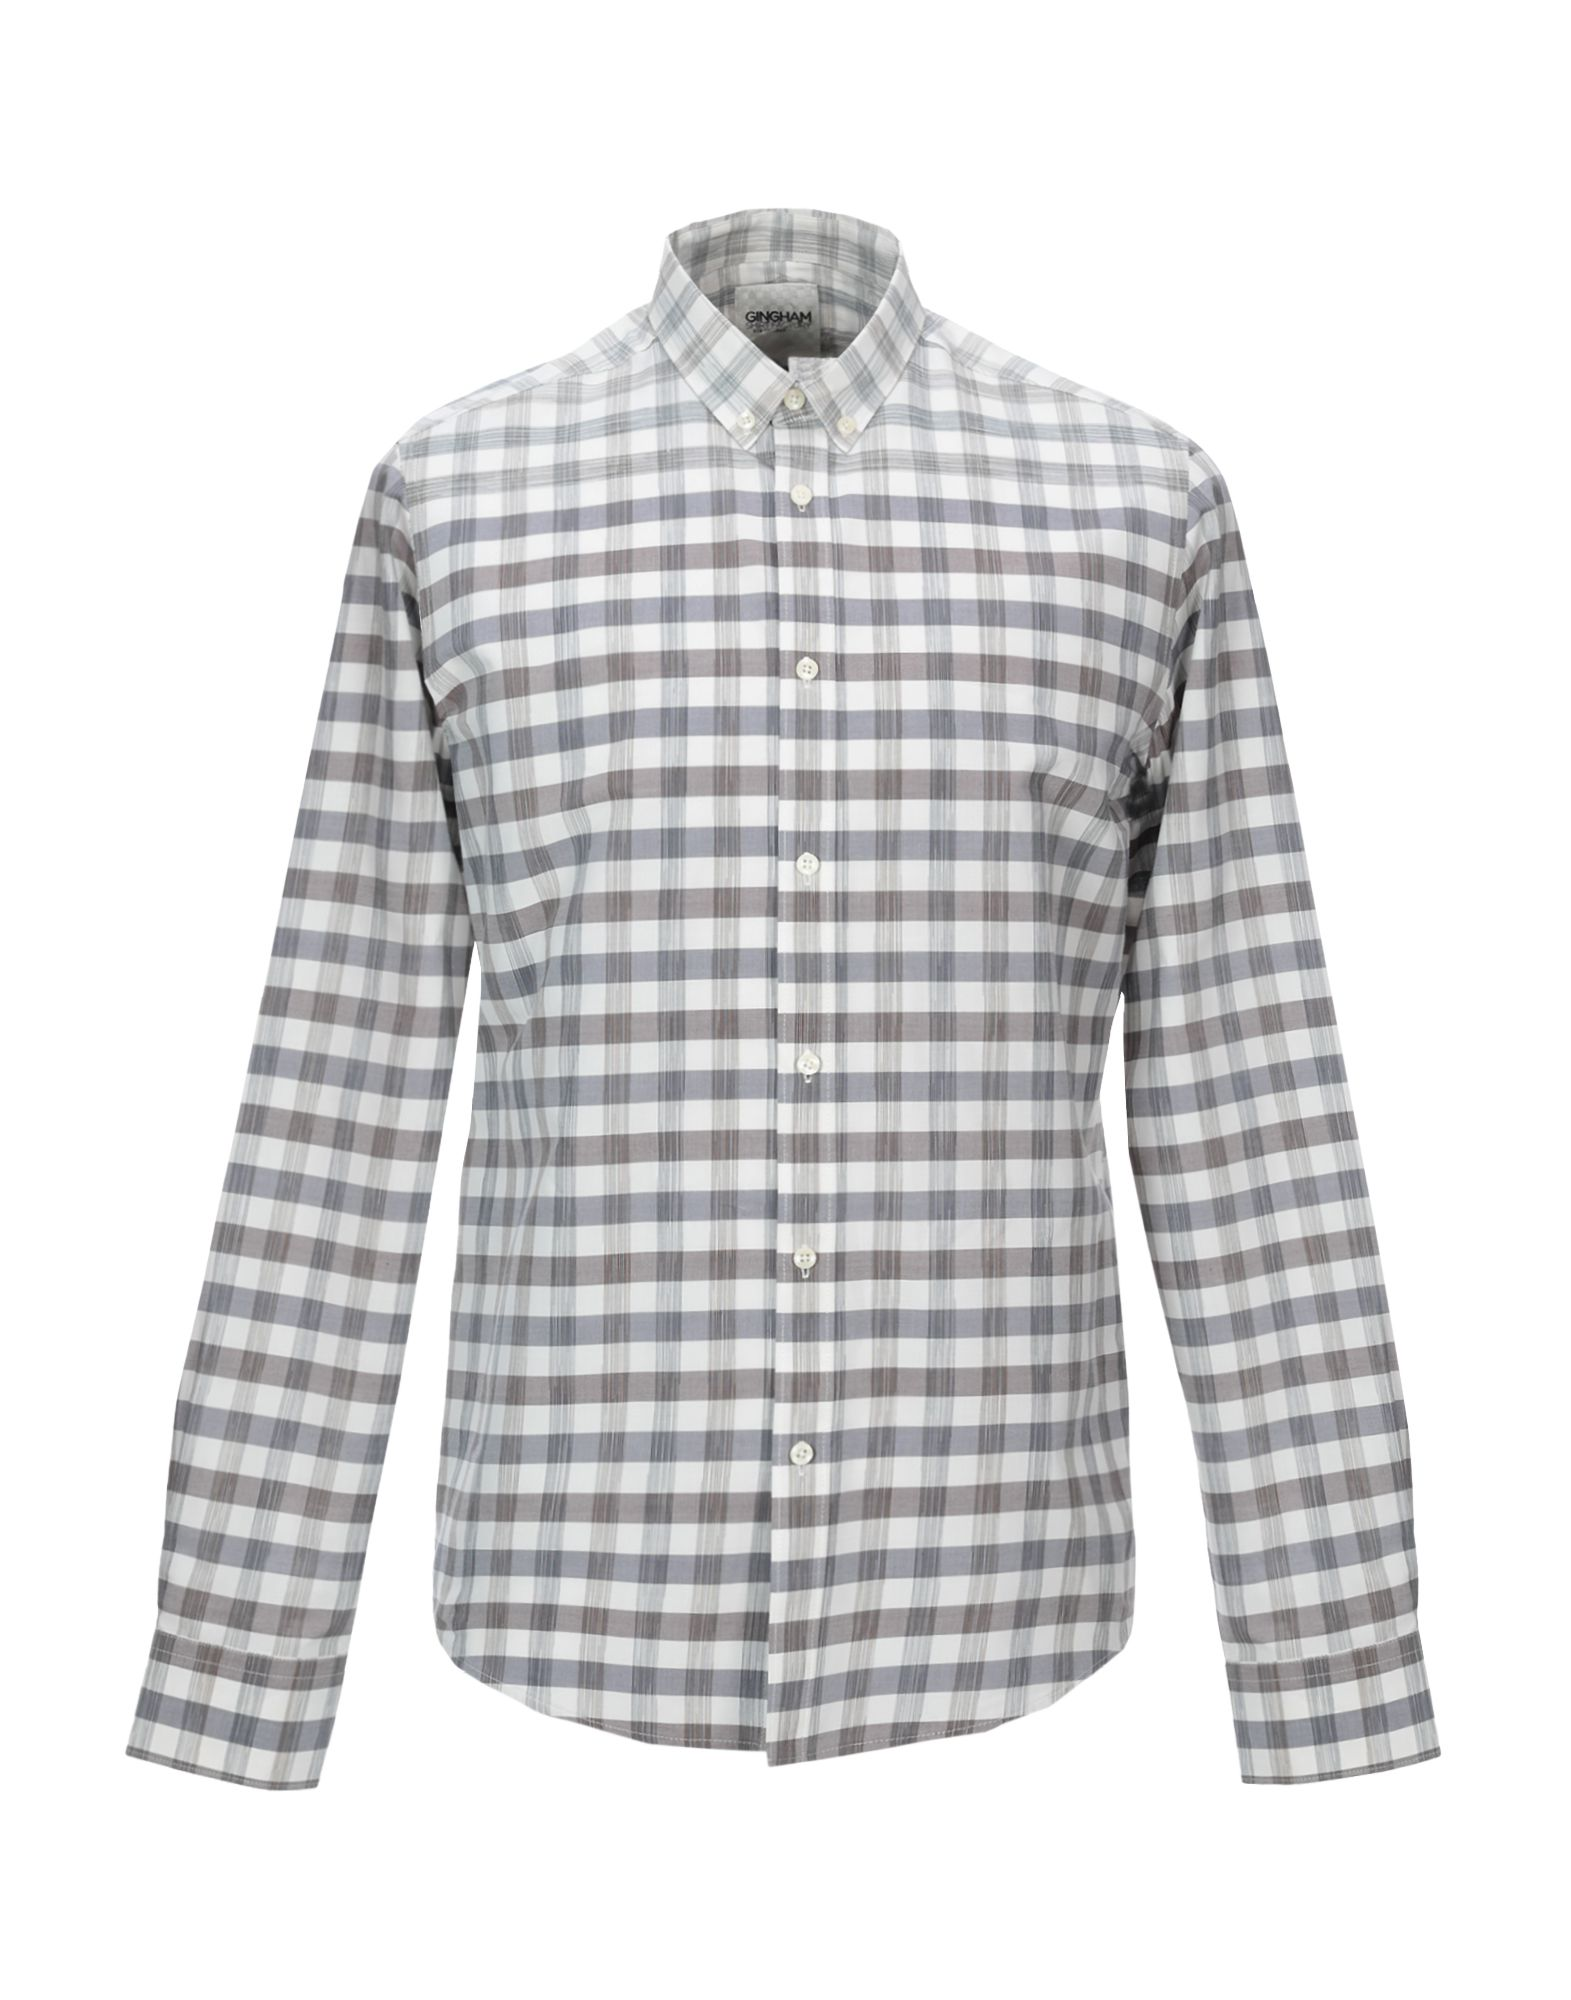 GINGHAM SHIRT FACTORY by BEN SHERMAN Pубашка v neckline fluted sleeve gingham top